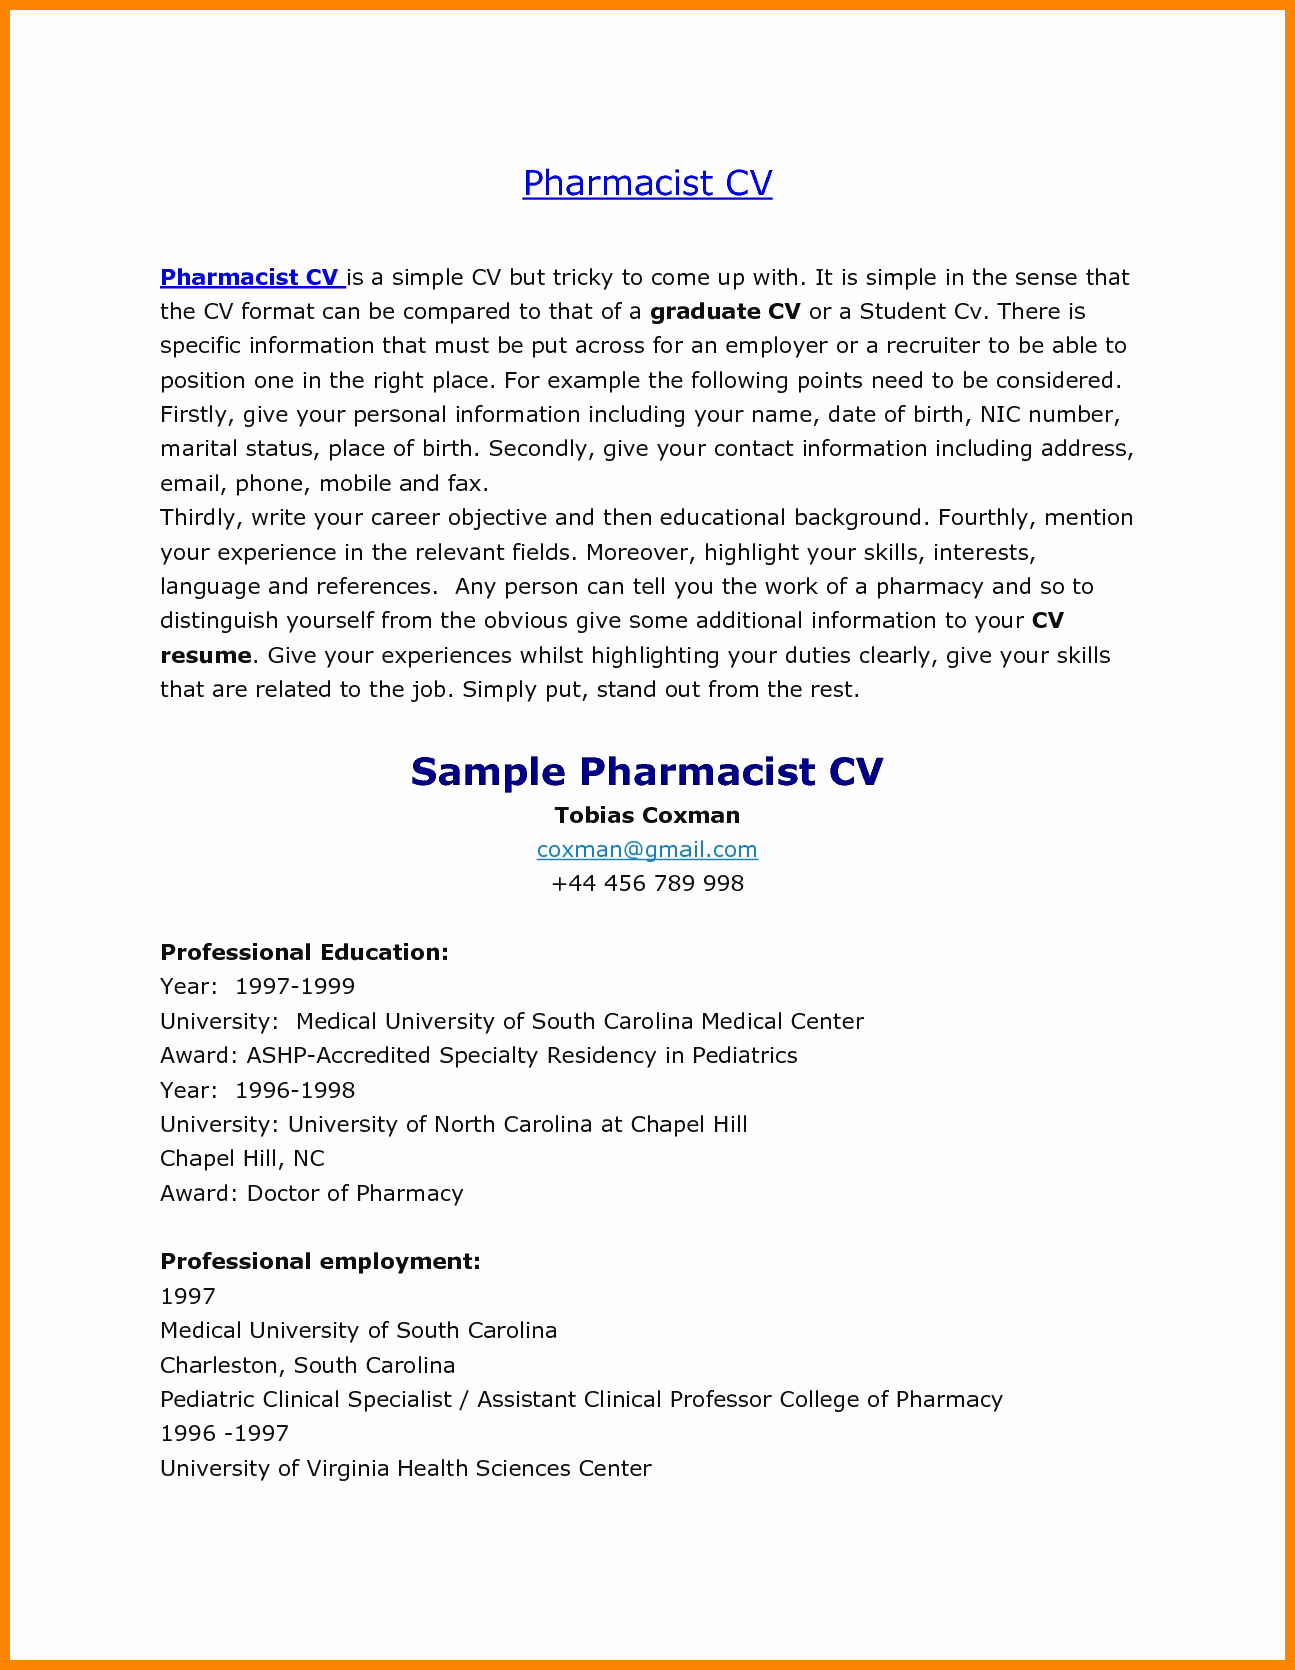 Pharmacy Curriculum Vitae Template Unique 6 Cv Samples for Pharmacists